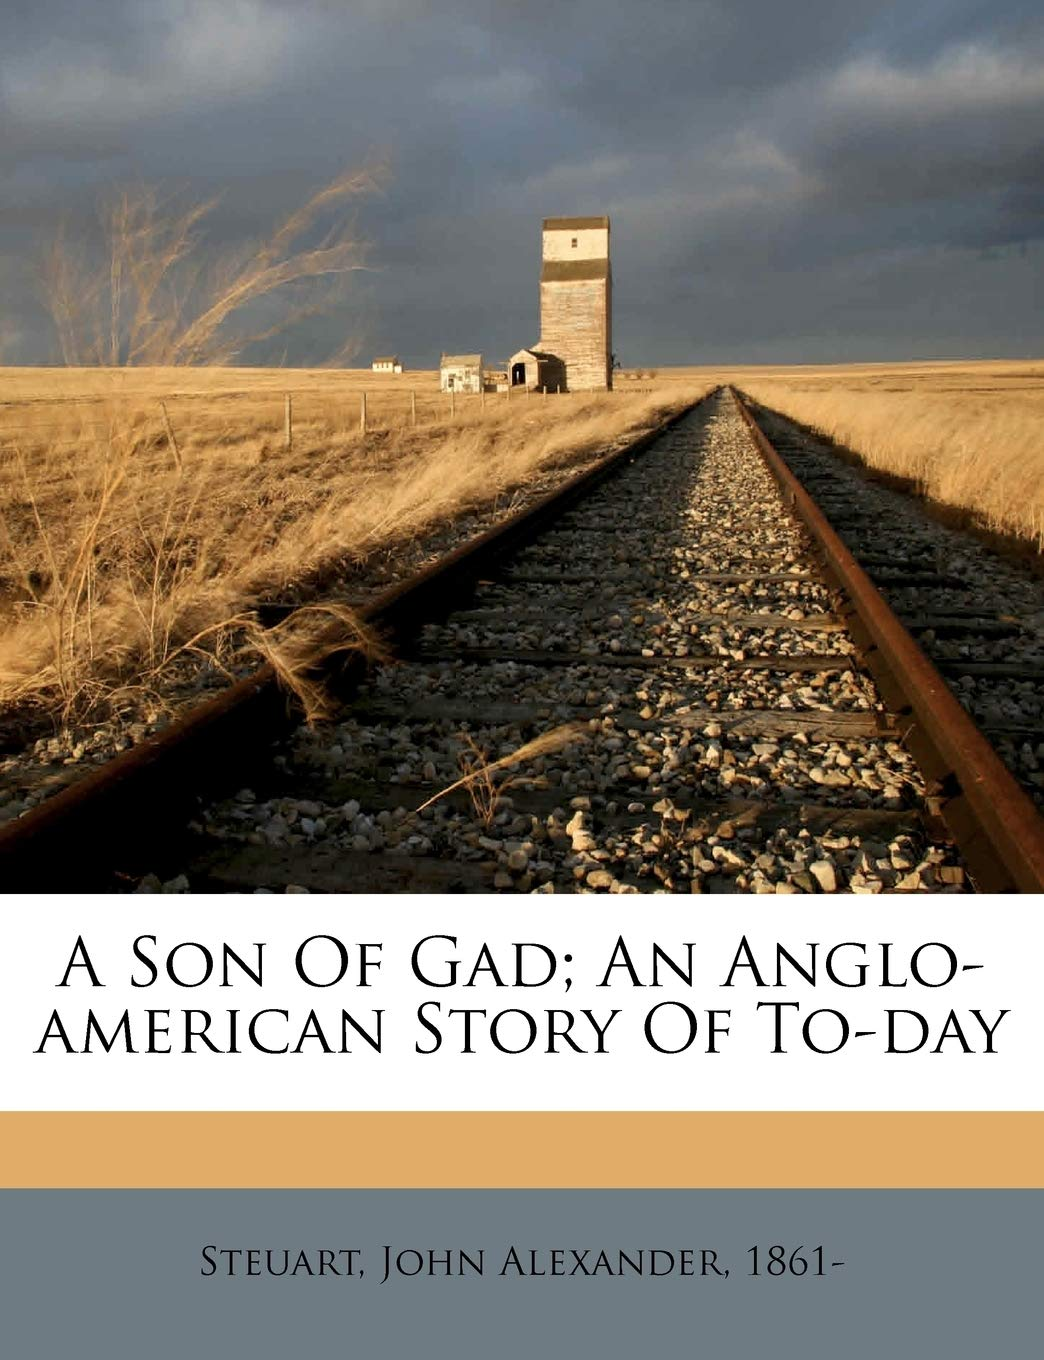 Of gad son Son of